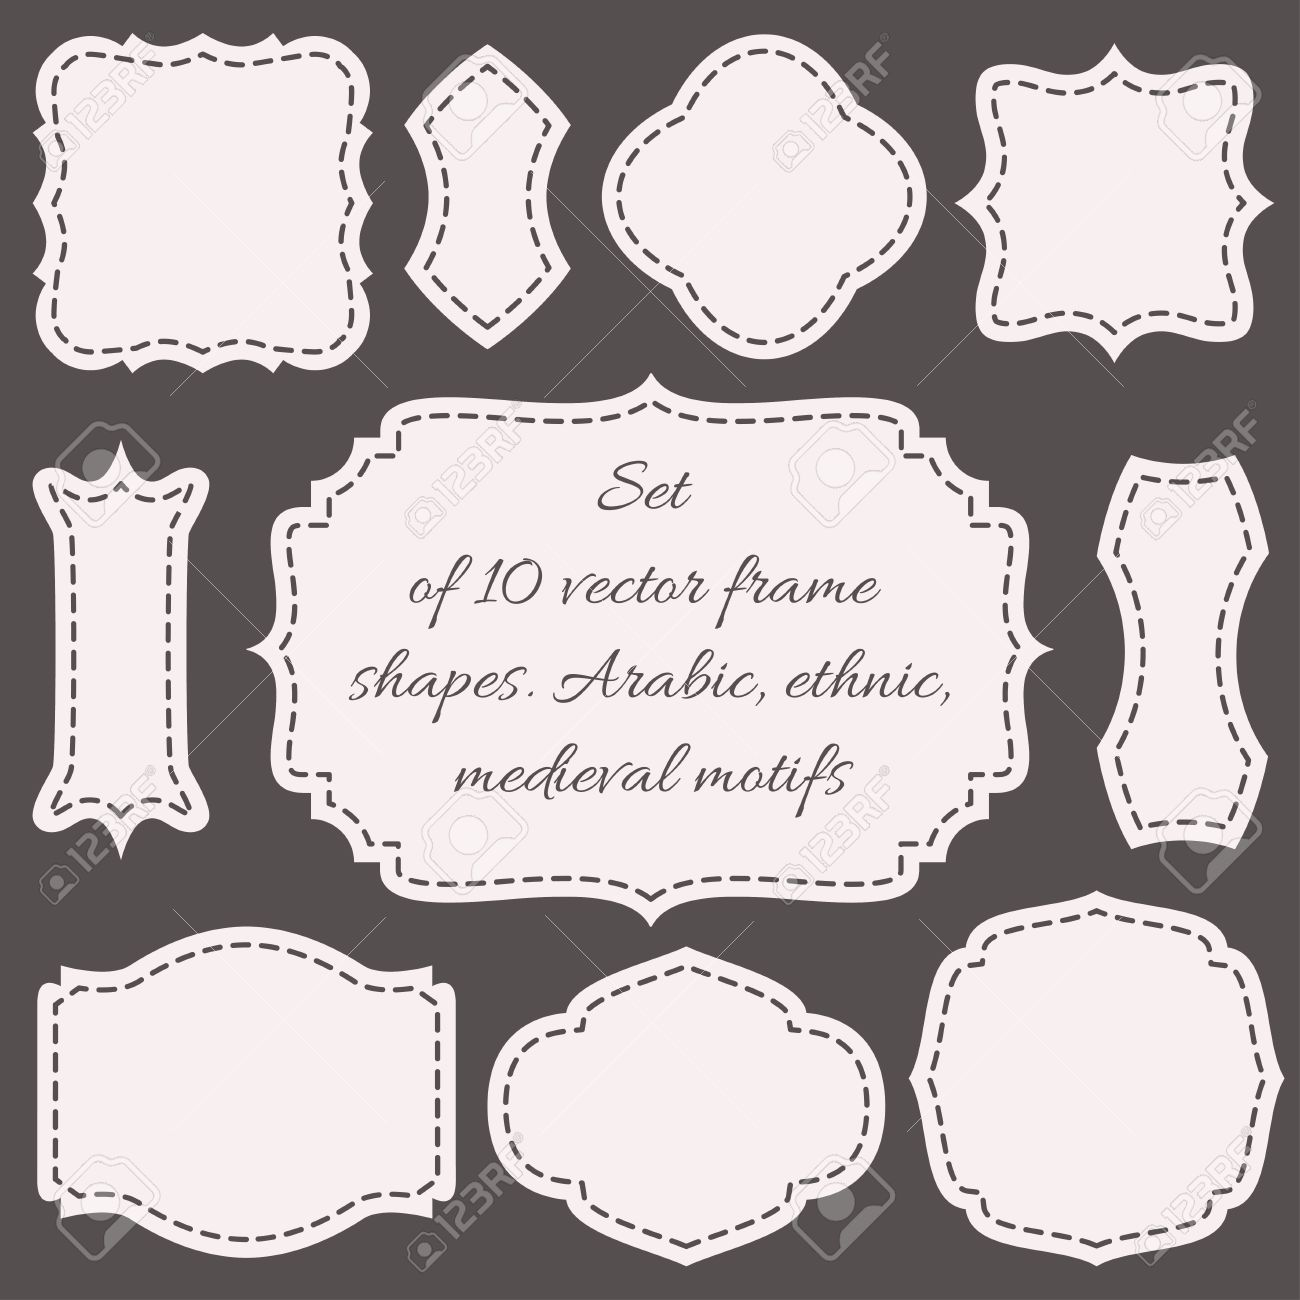 Set of ten vector frames shapes wedding boards royalty free set of ten vector frames shapes wedding boards stock vector 53141200 jeuxipadfo Images